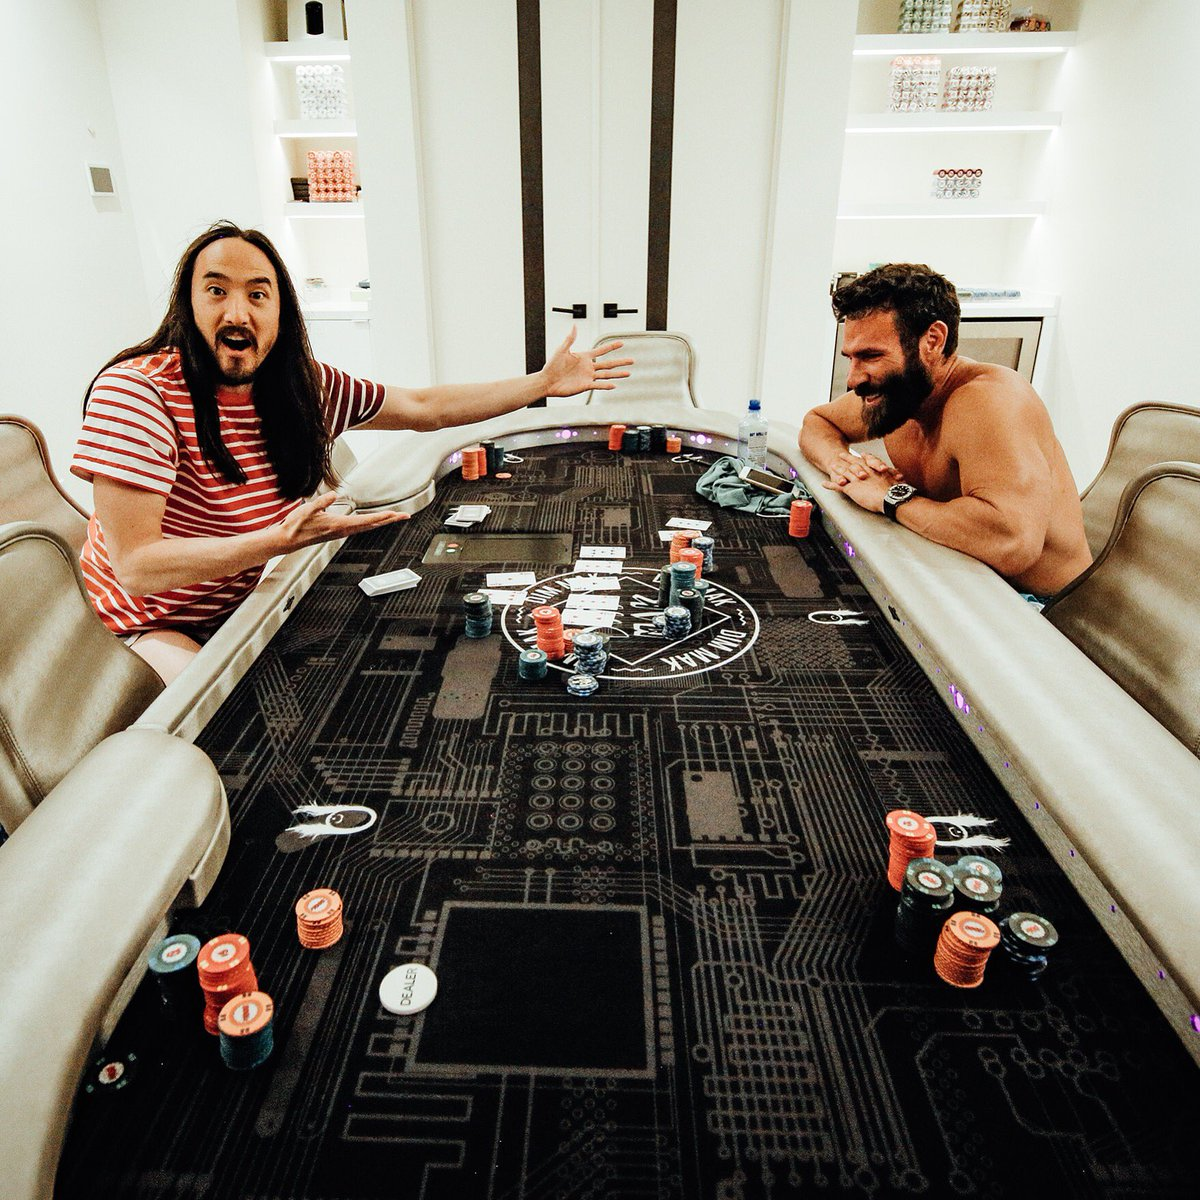 ♠️♣️♥️♦️ let's see if I can outbluff @danbilzerian on home turf #aokisplayhouse